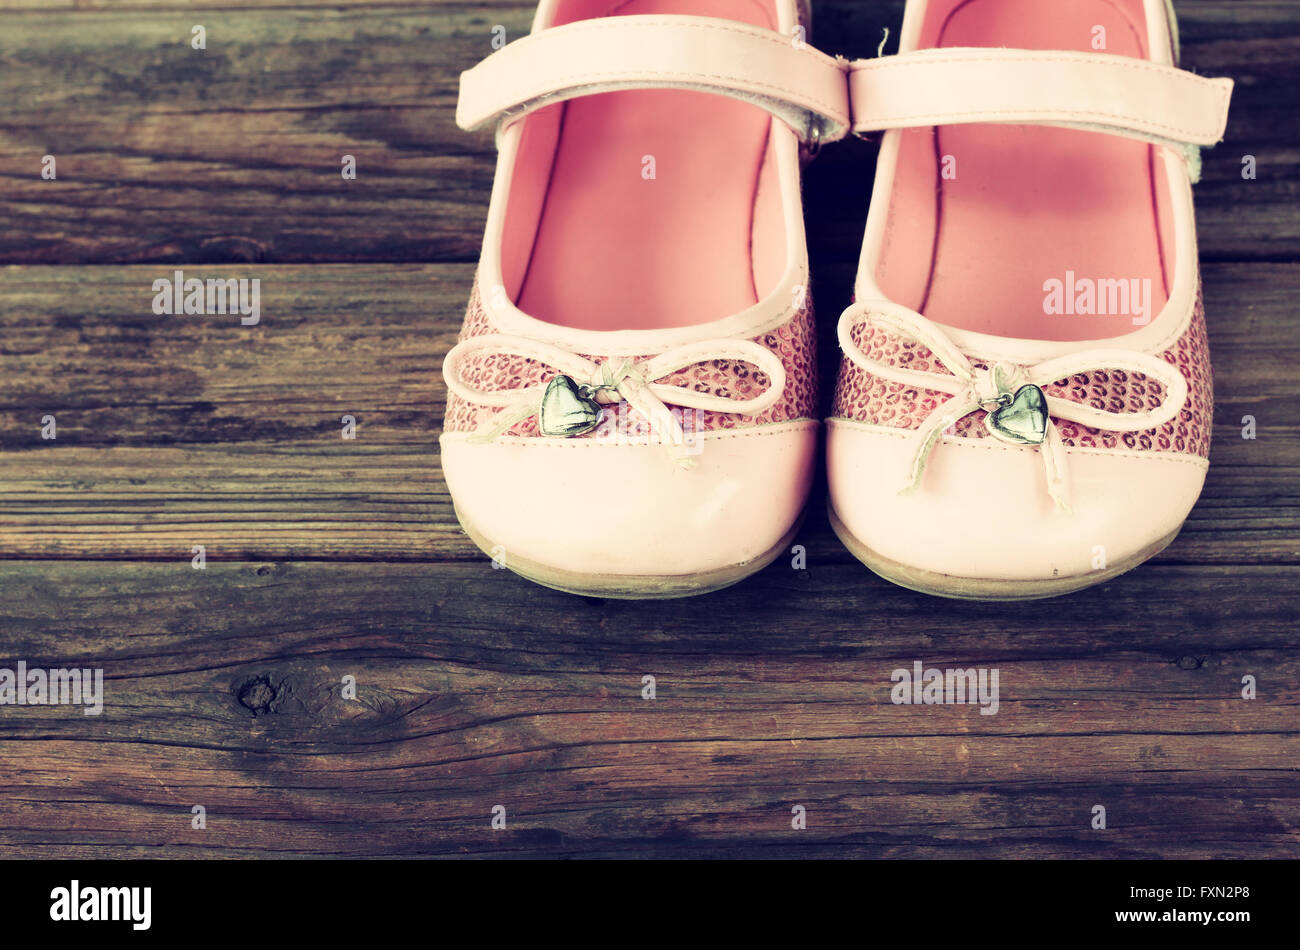 girl shoes over wooden deck floor. filtered image. - Stock Image